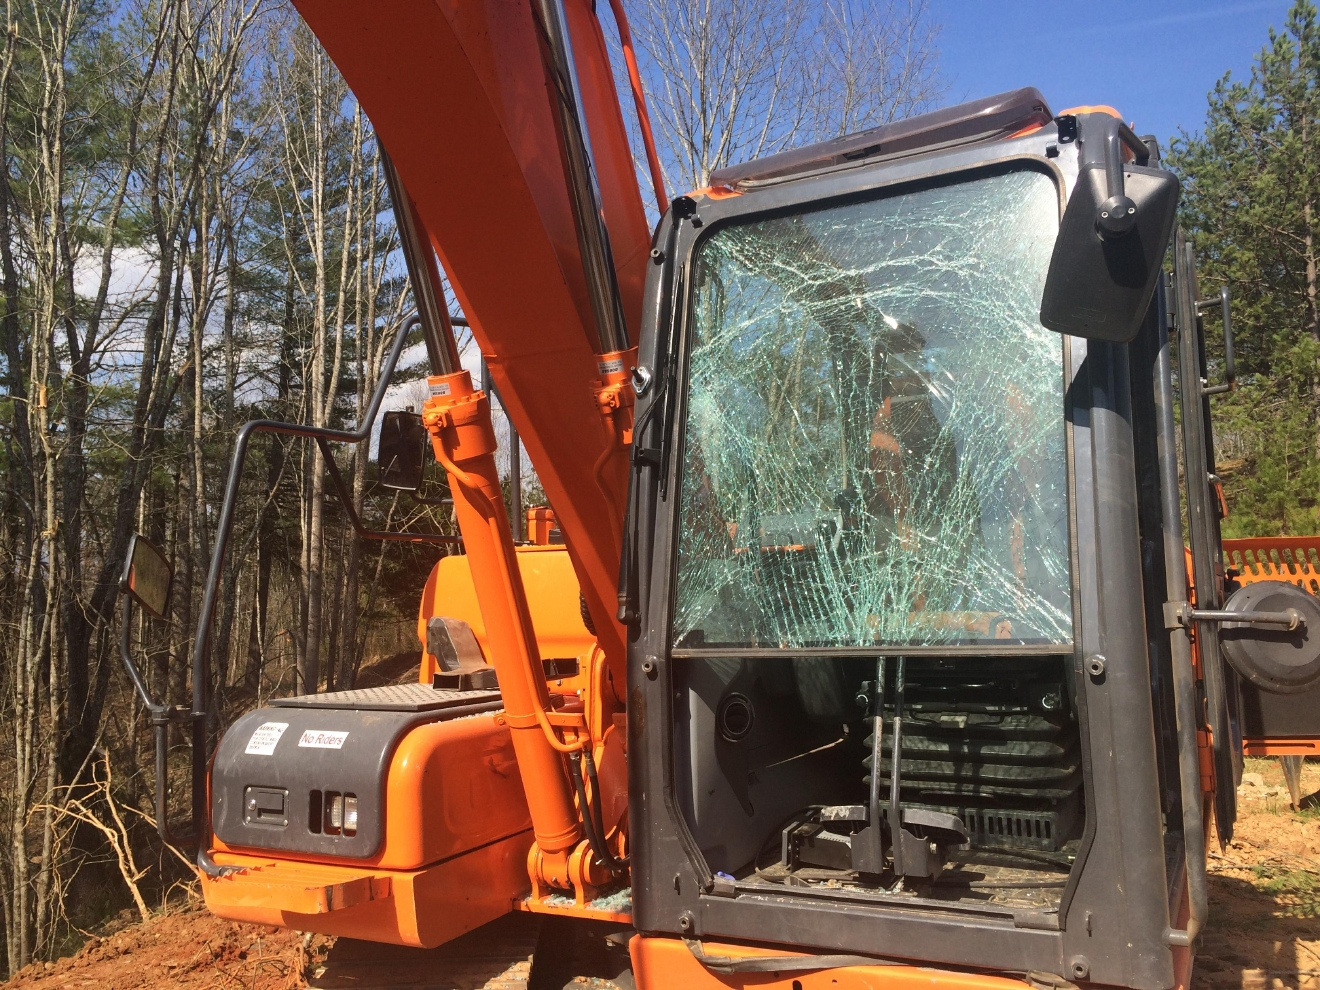 Track hoe at Rolling Hills development in Buncombe County. Photo credit WLOS